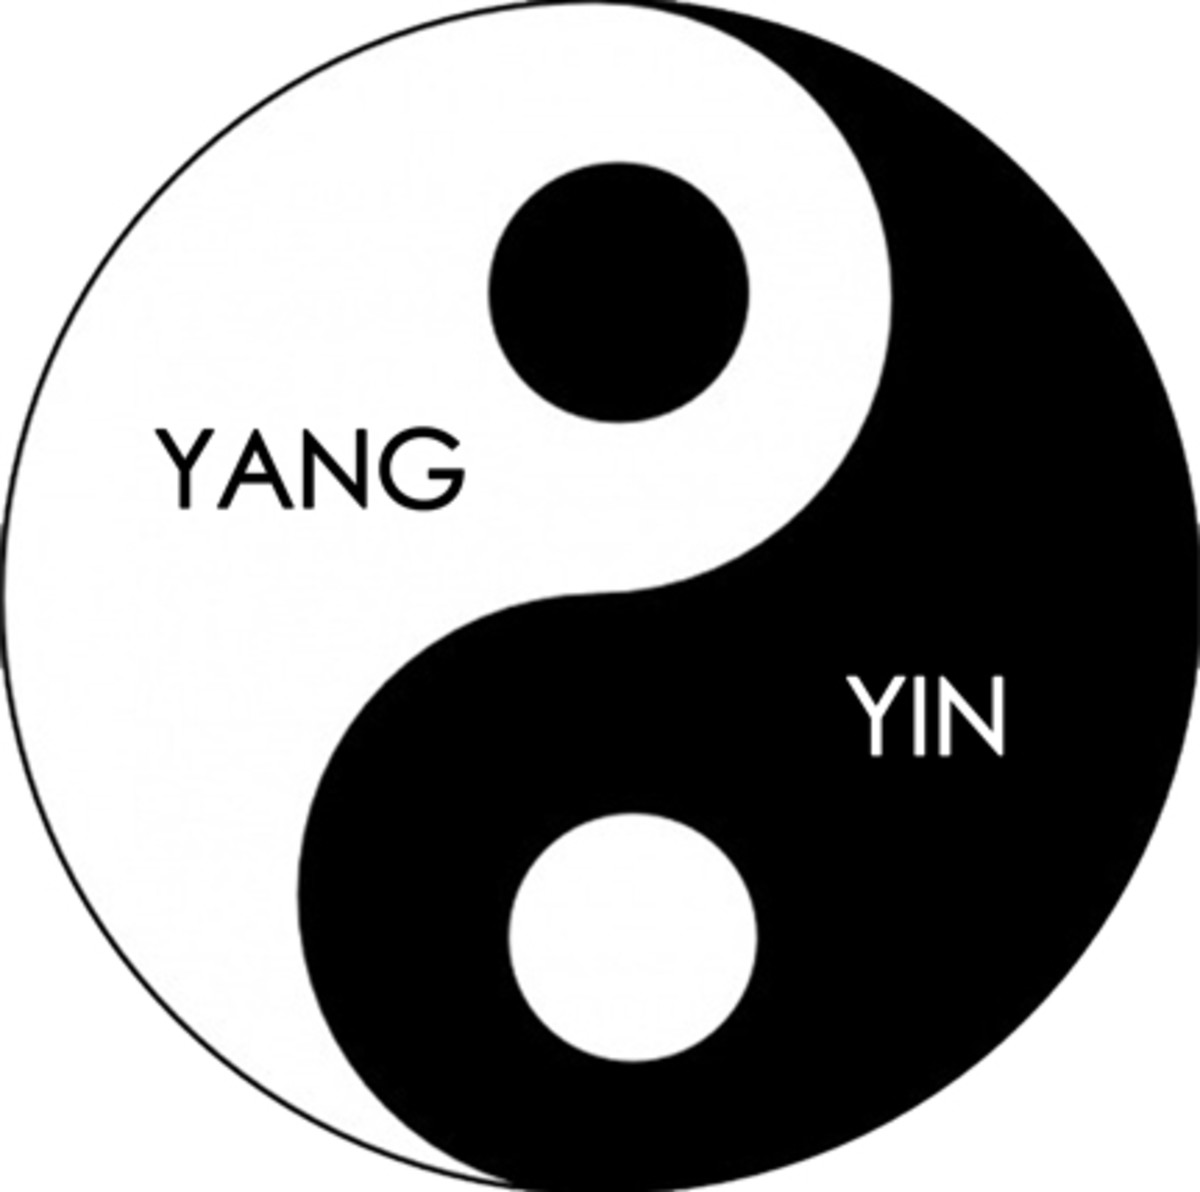 the-3rd-character-in-the-yin-and-yang